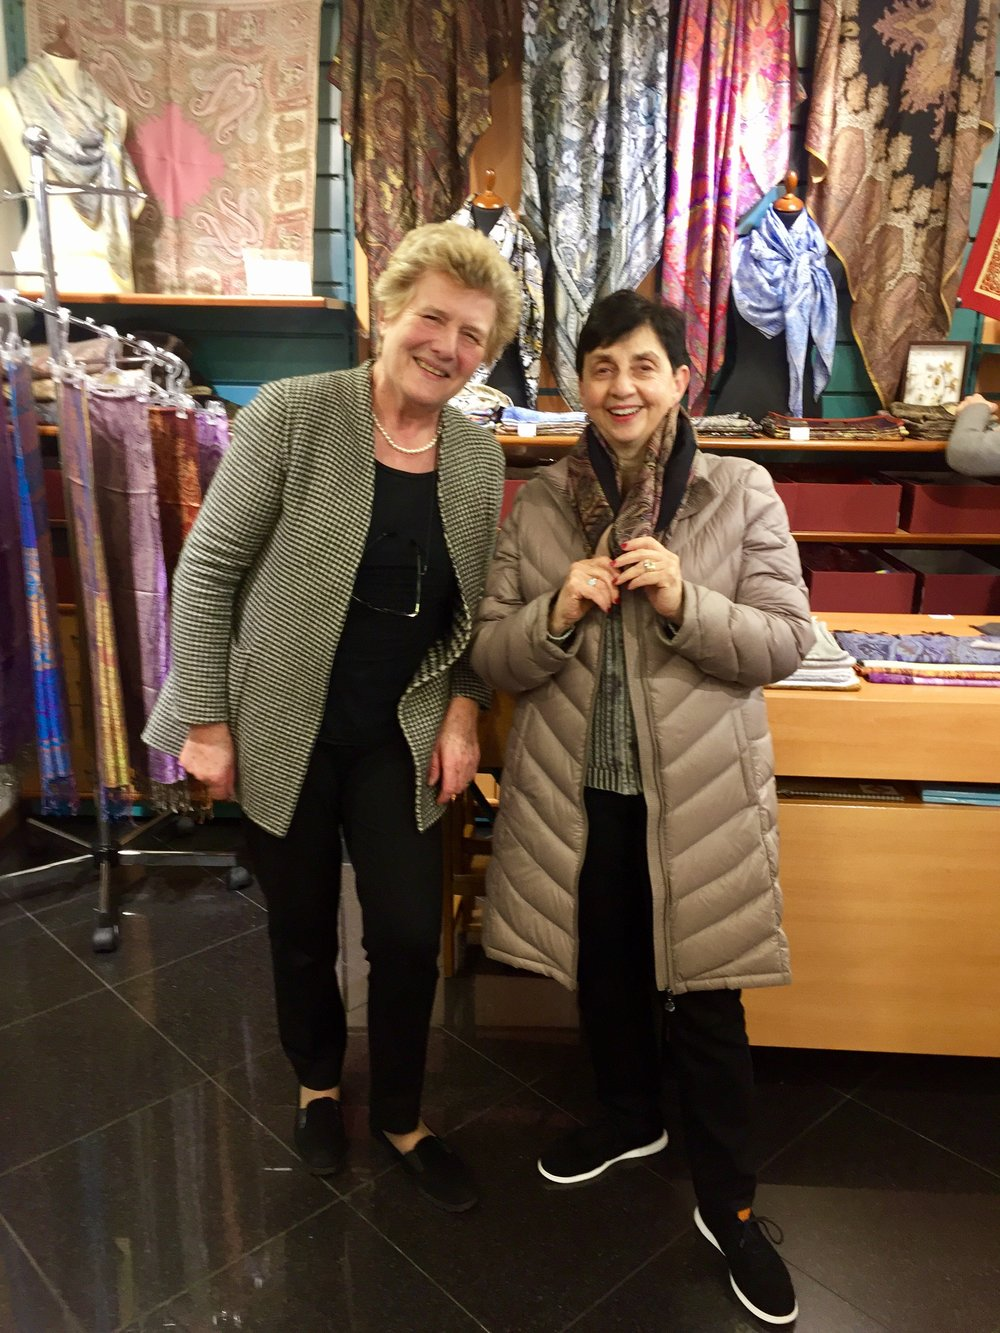 My mom receiving wonderful assistance in buying a silk scarf from the owner of Azalea in Bellagio.